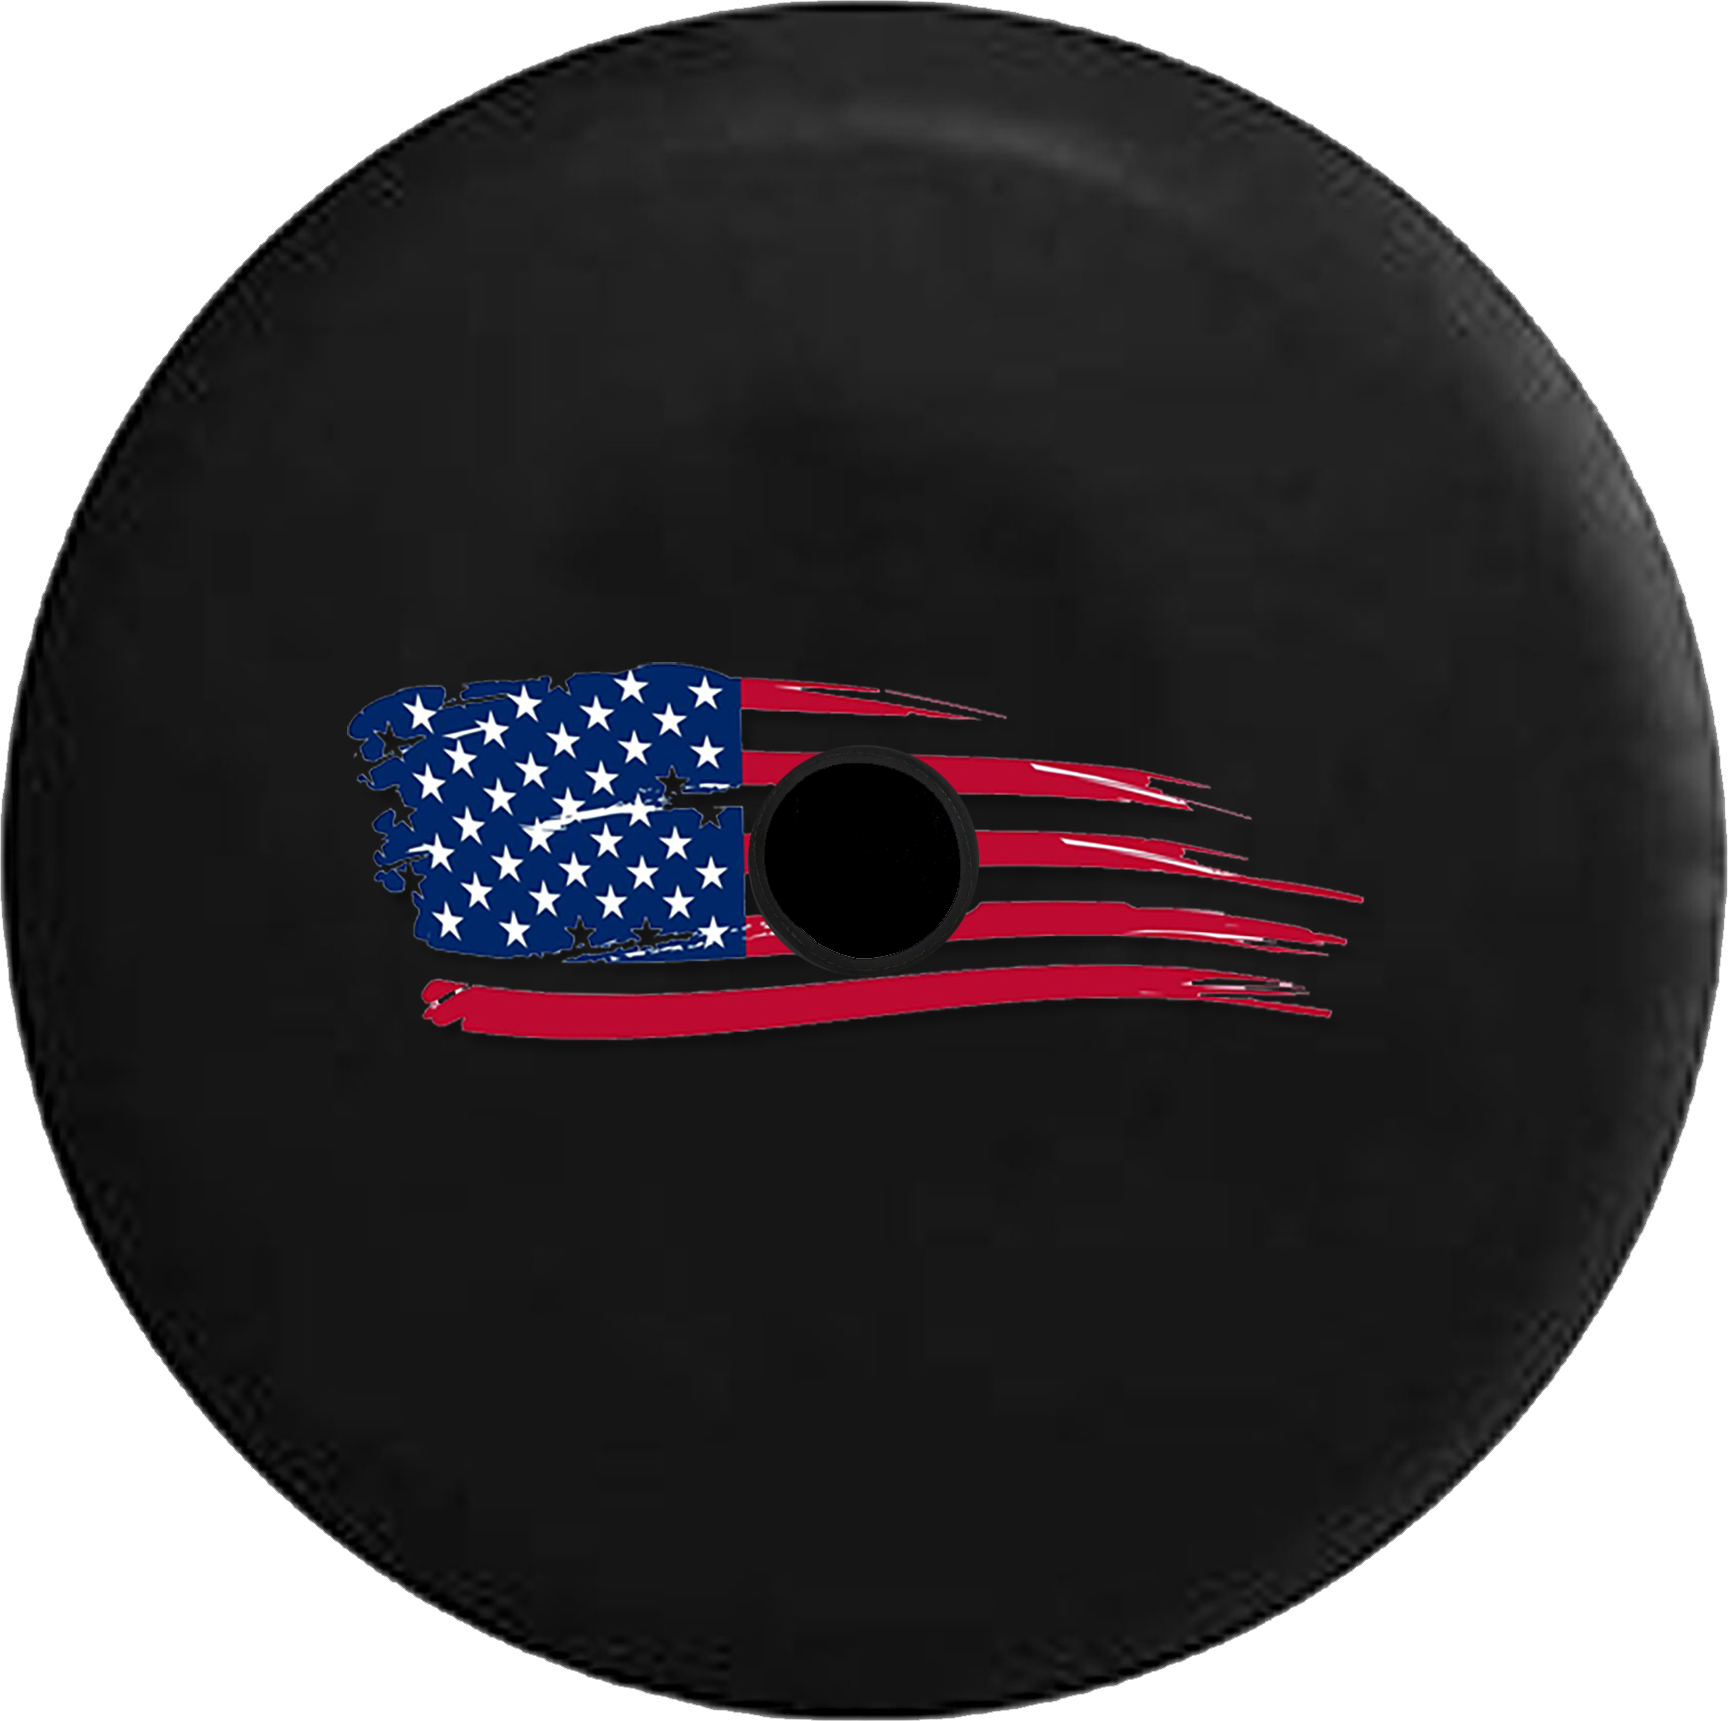 Jeep Wrangler JL Backup Camera Day Vintage Distressed American Flag Painted  Look RV Camper Spare Tire Cover-BLACK-CUSTOM SIZE/COLOR/INK